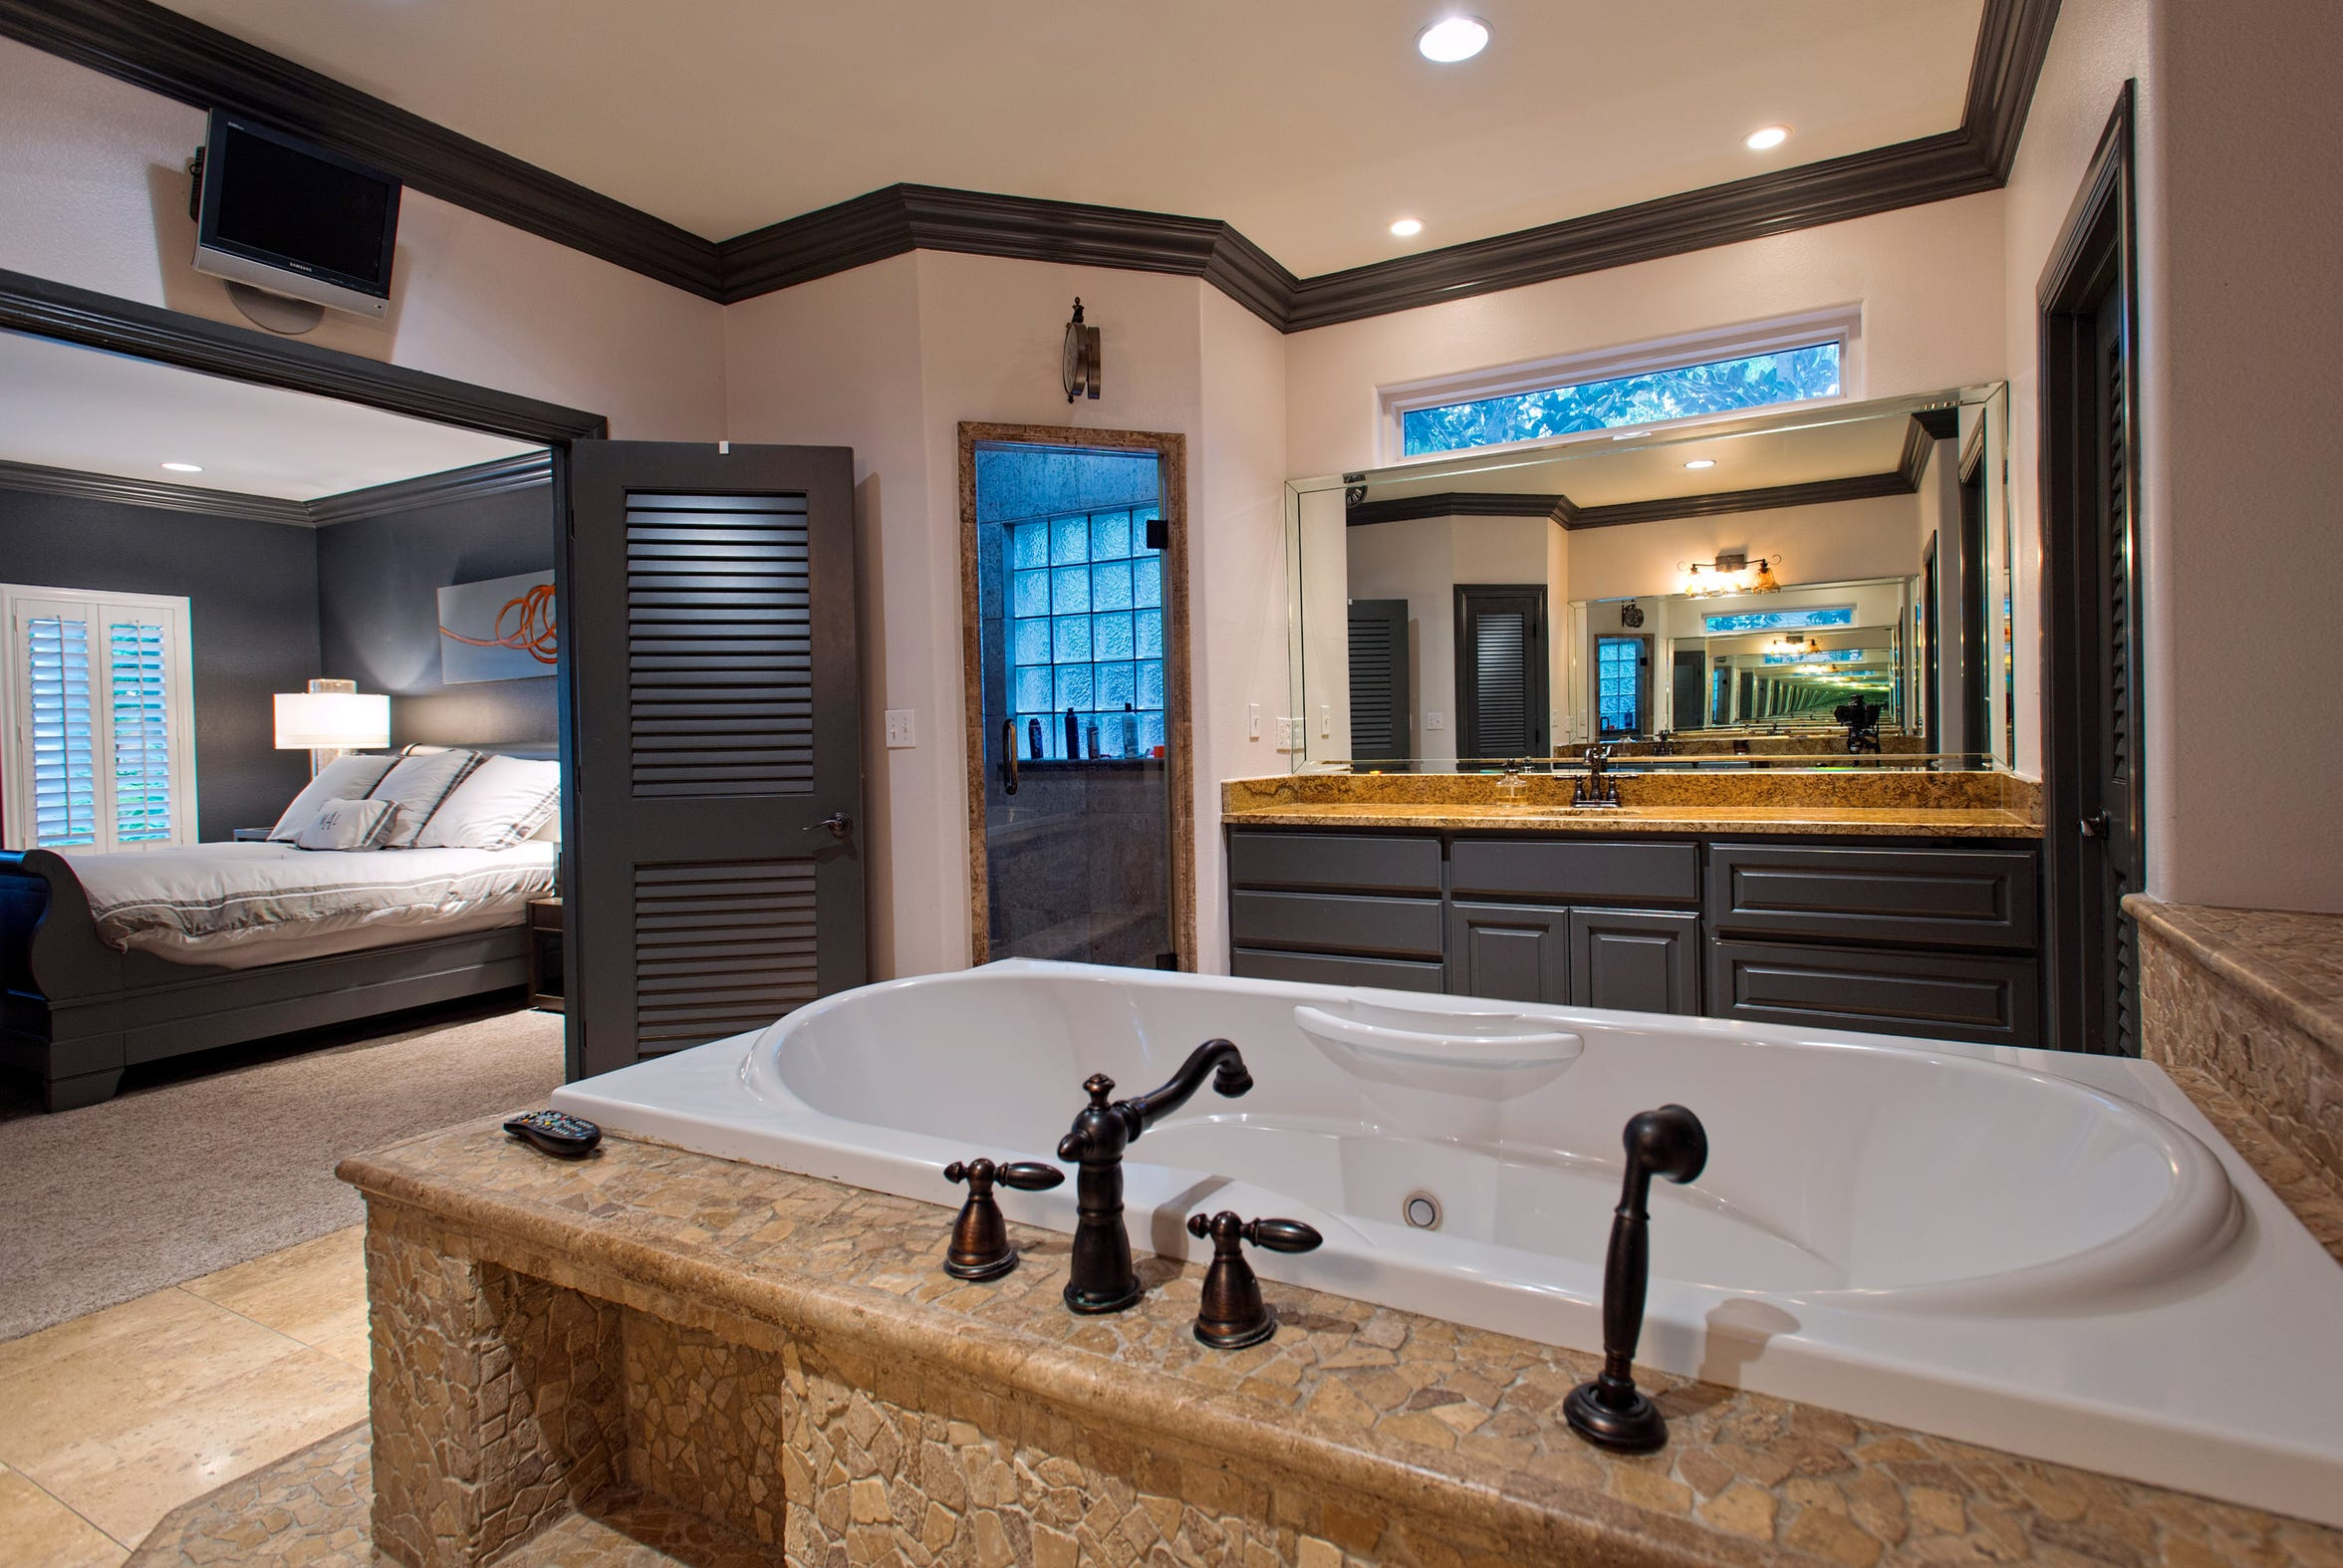 A whirlpool tub is encased in a unique mosaic tile surround in the master bathroom.